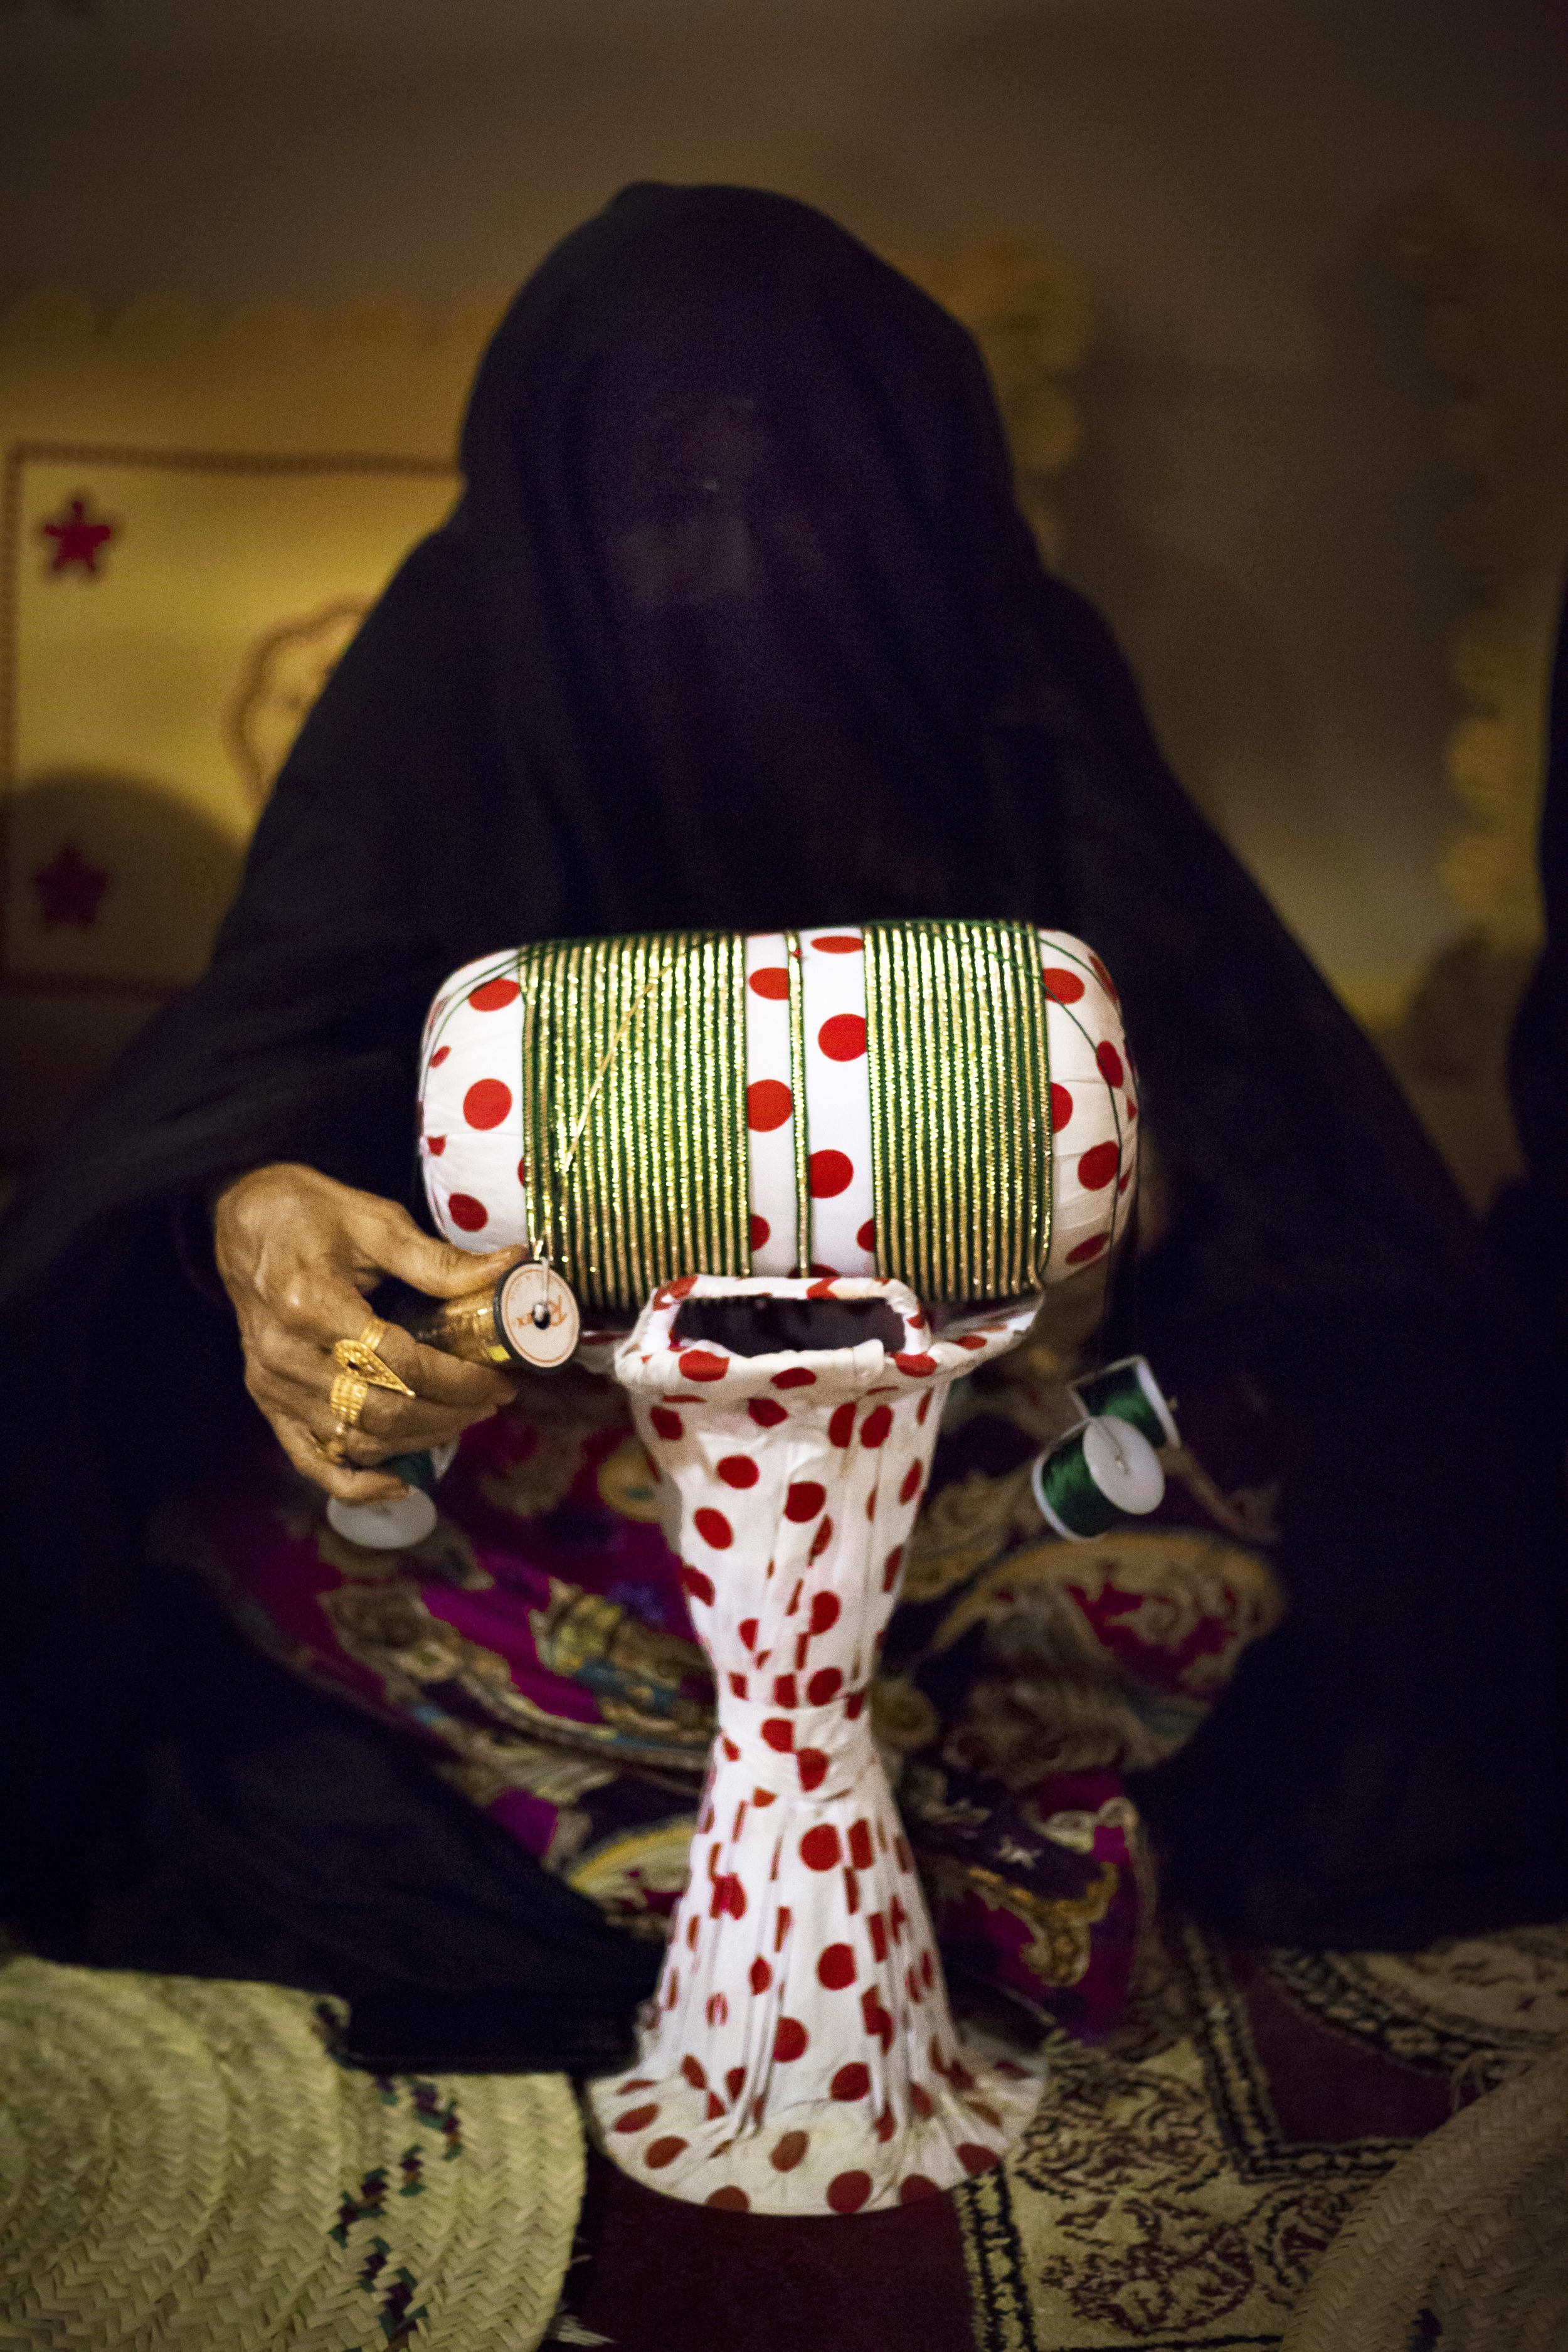 An Emirati woman demonstrates a traditional method for making ornate trimmings for abayas.jpg